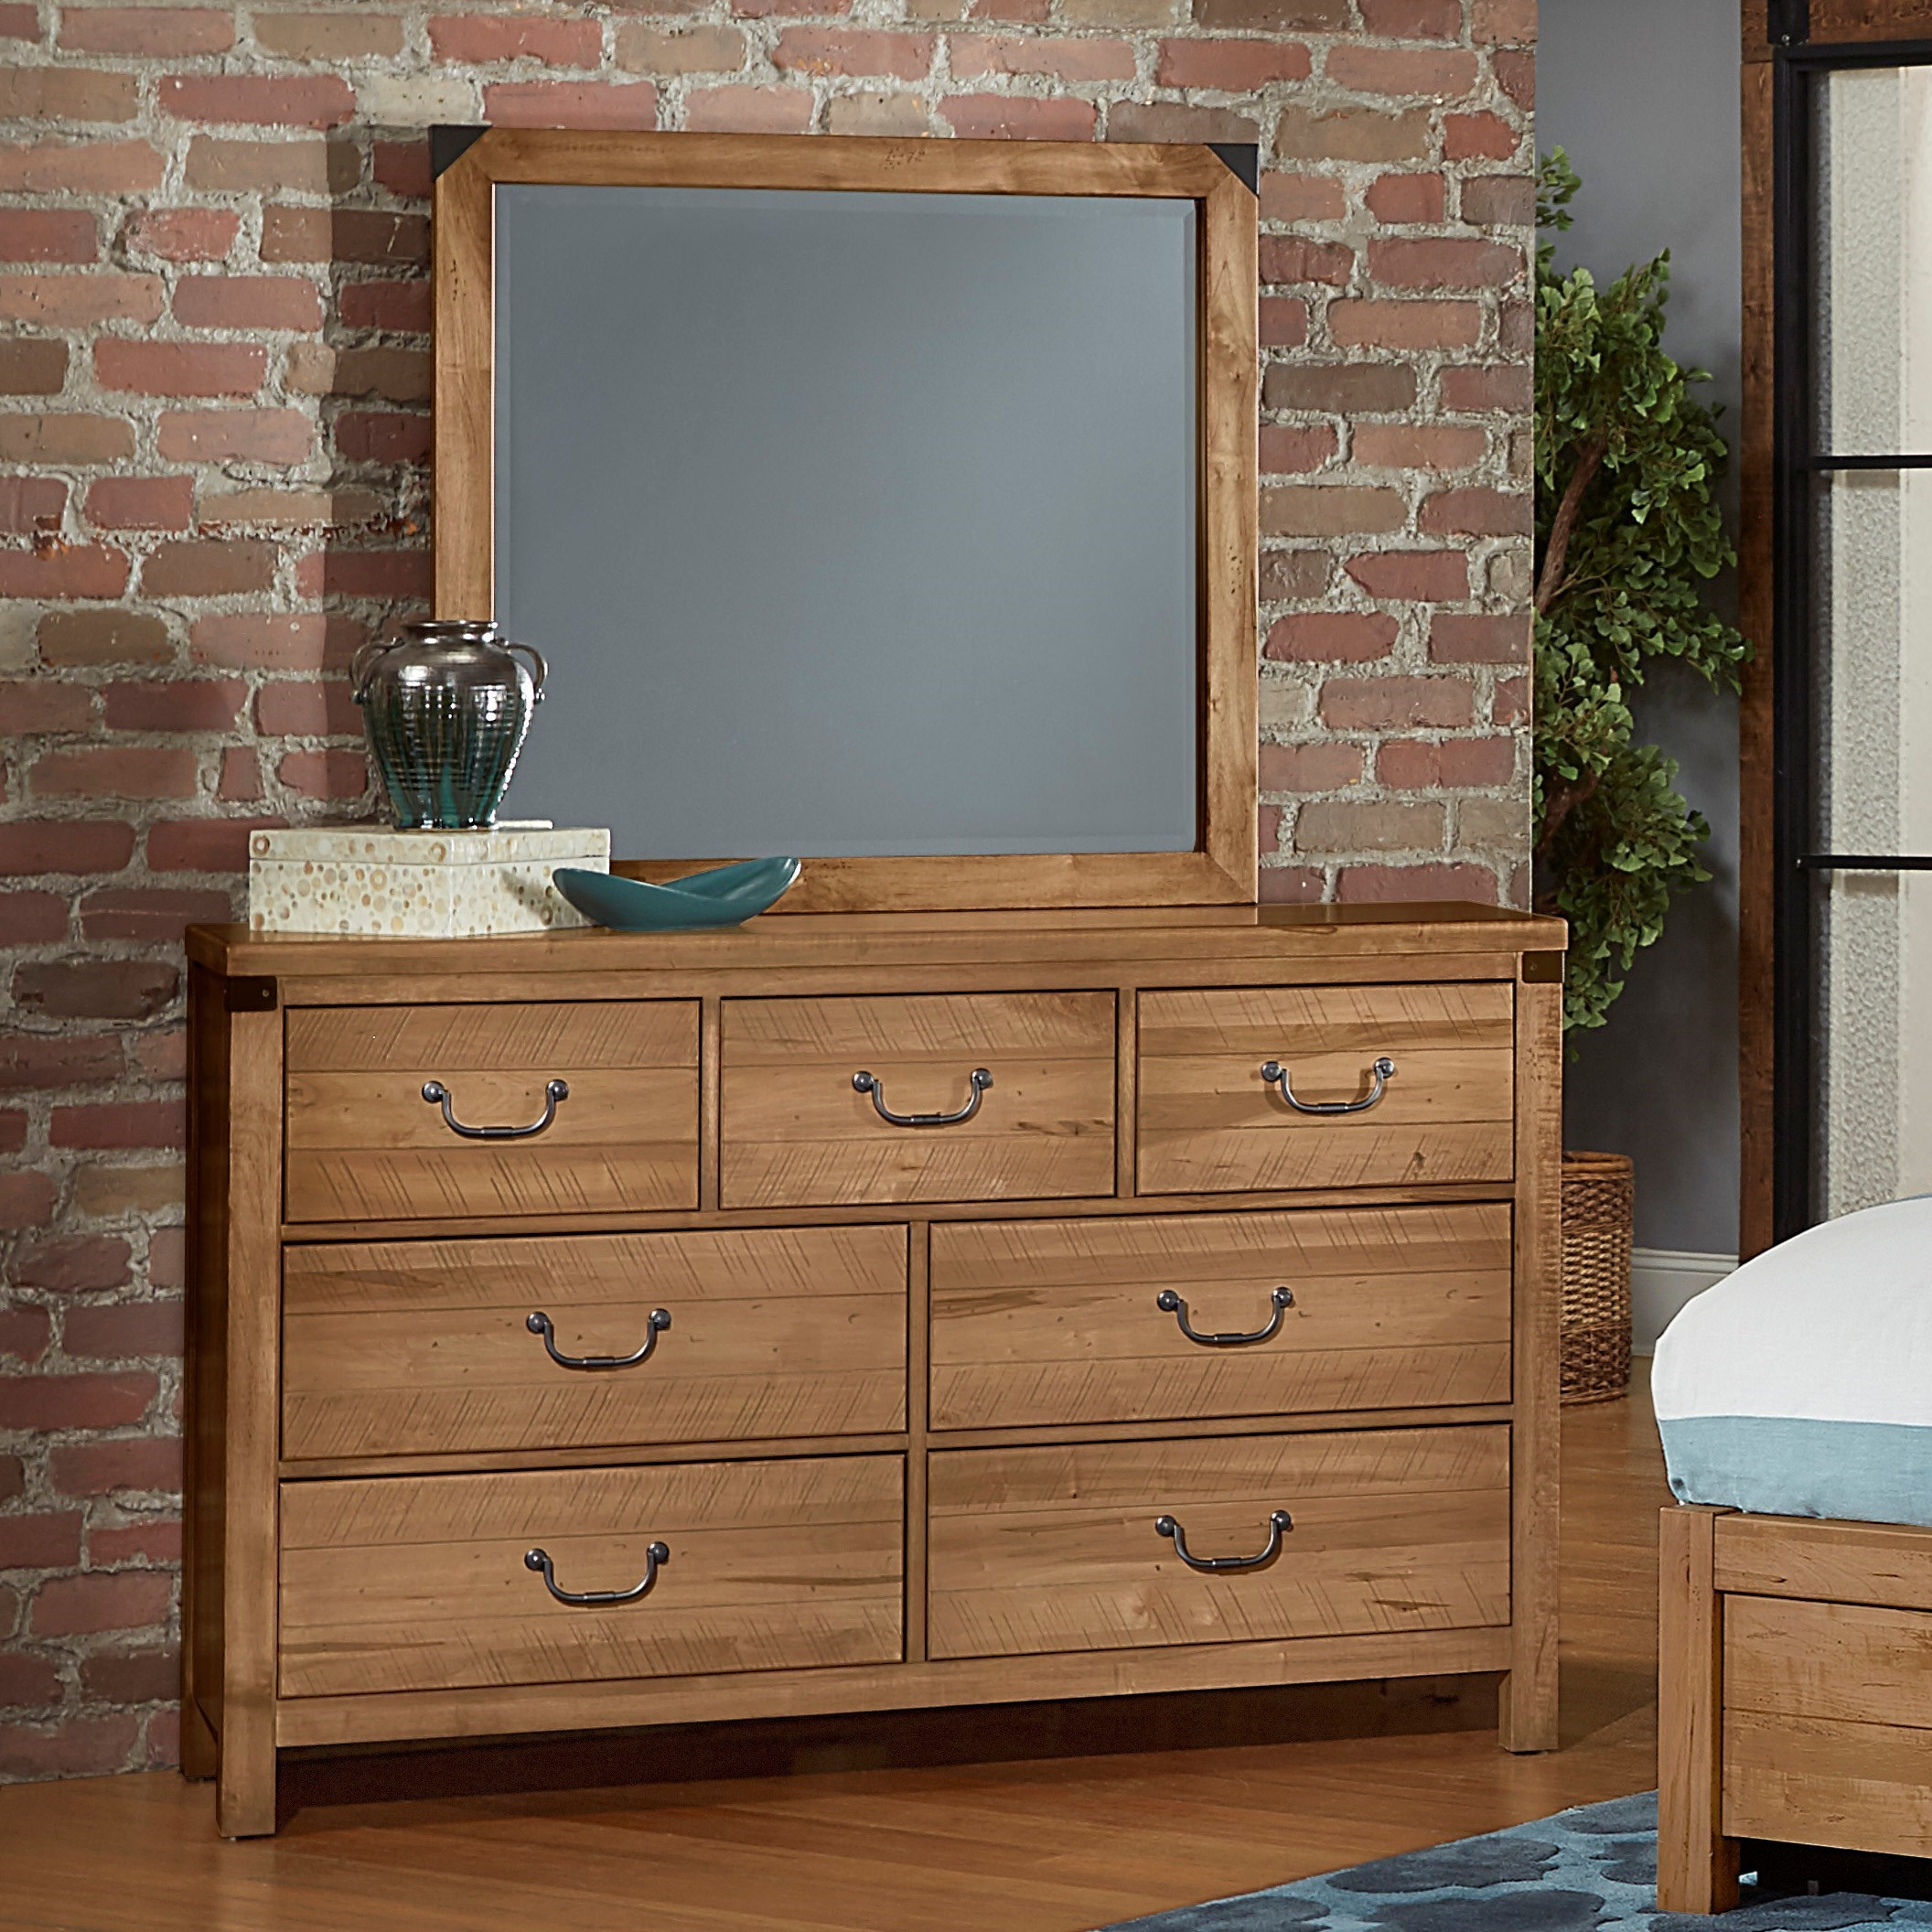 Sedgwick Dresser with Mirror by Artisan & Post at Northeast Factory Direct